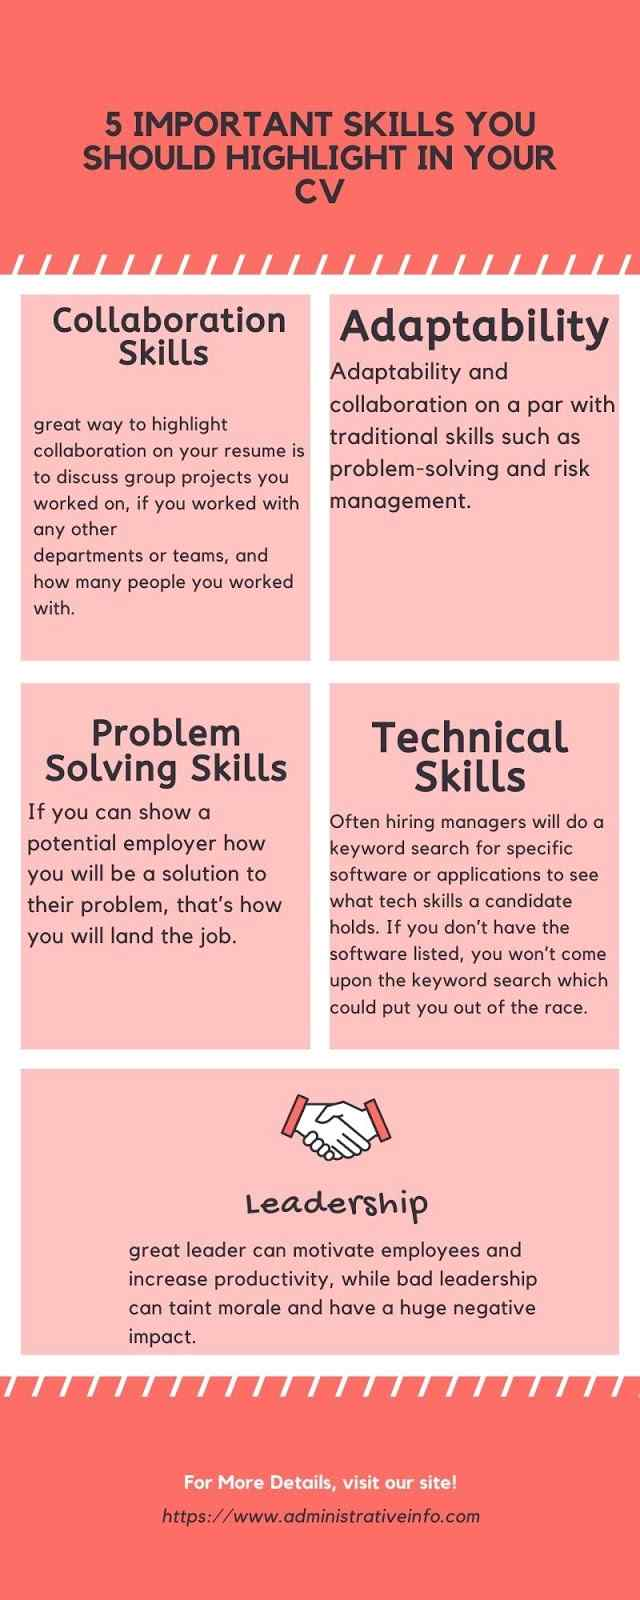 5 Important Skills You Should Highlight in Your CV